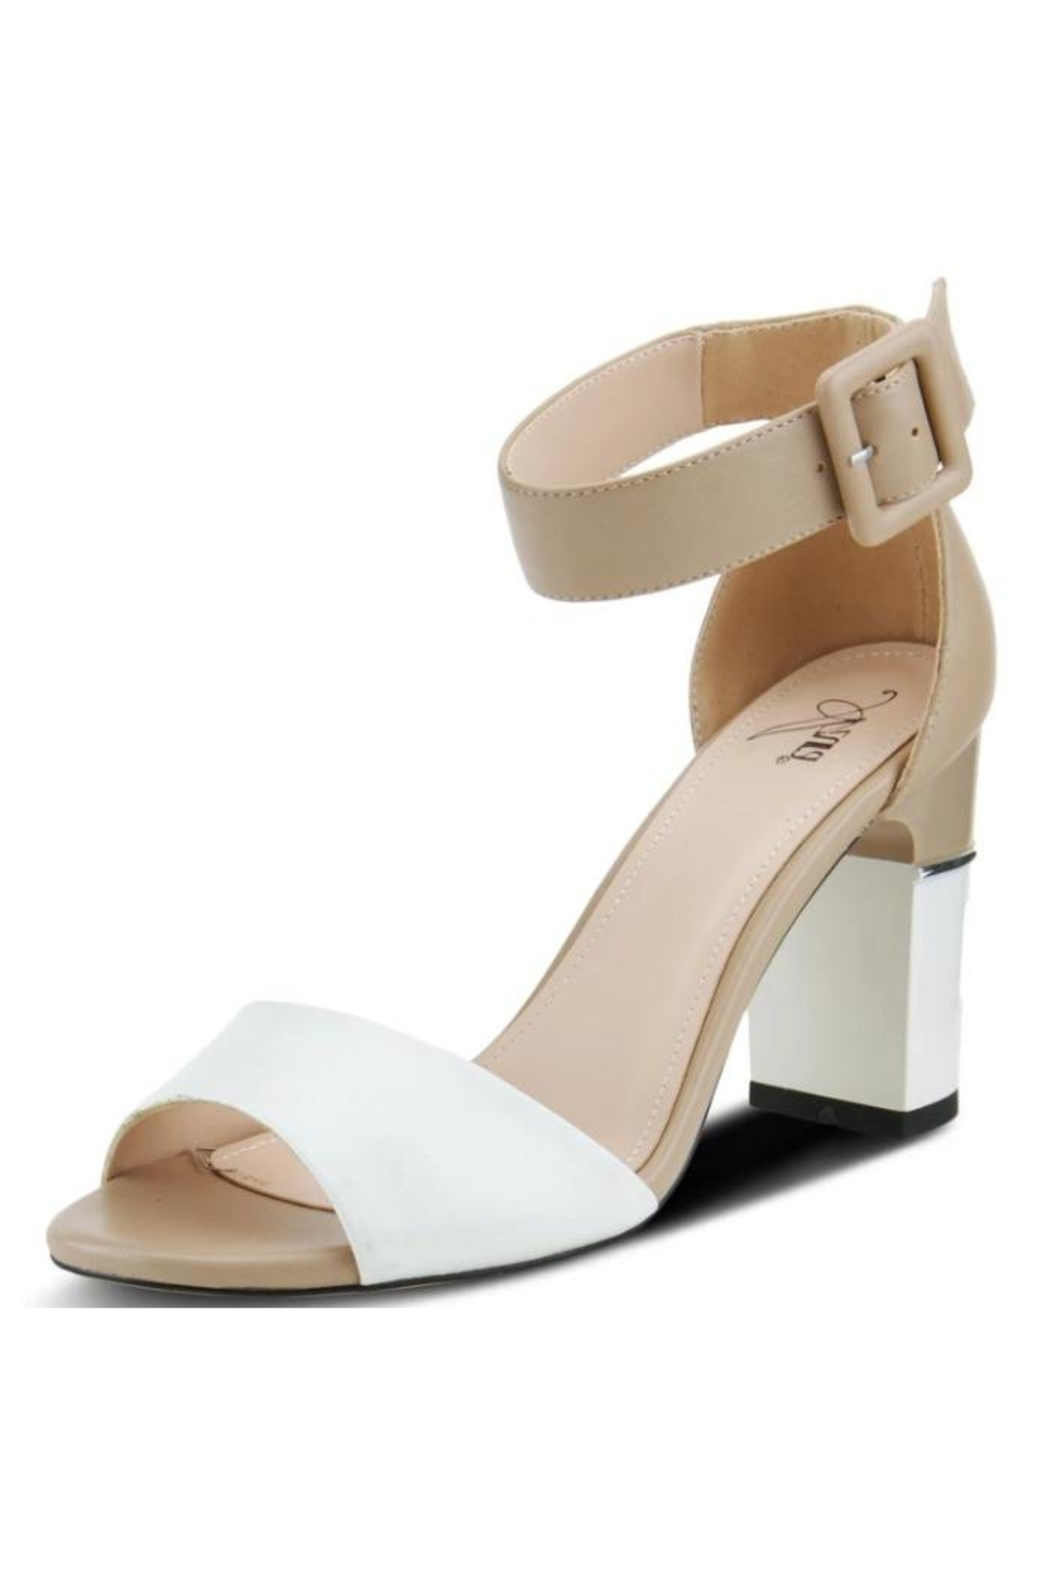 Azura Barbra Sandals - Front Cropped Image